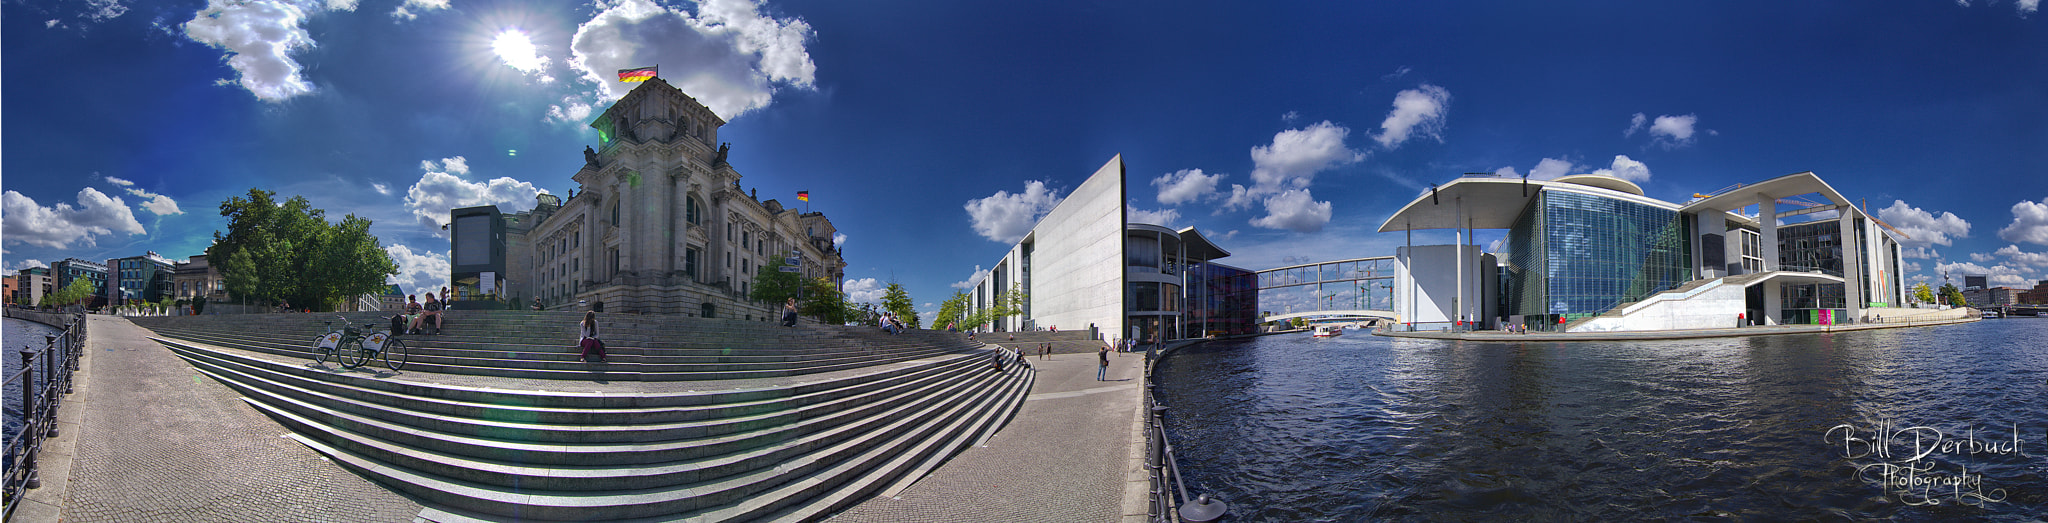 Photograph Reichstagsufer 360° Pano by Bill Derbuch on 500px